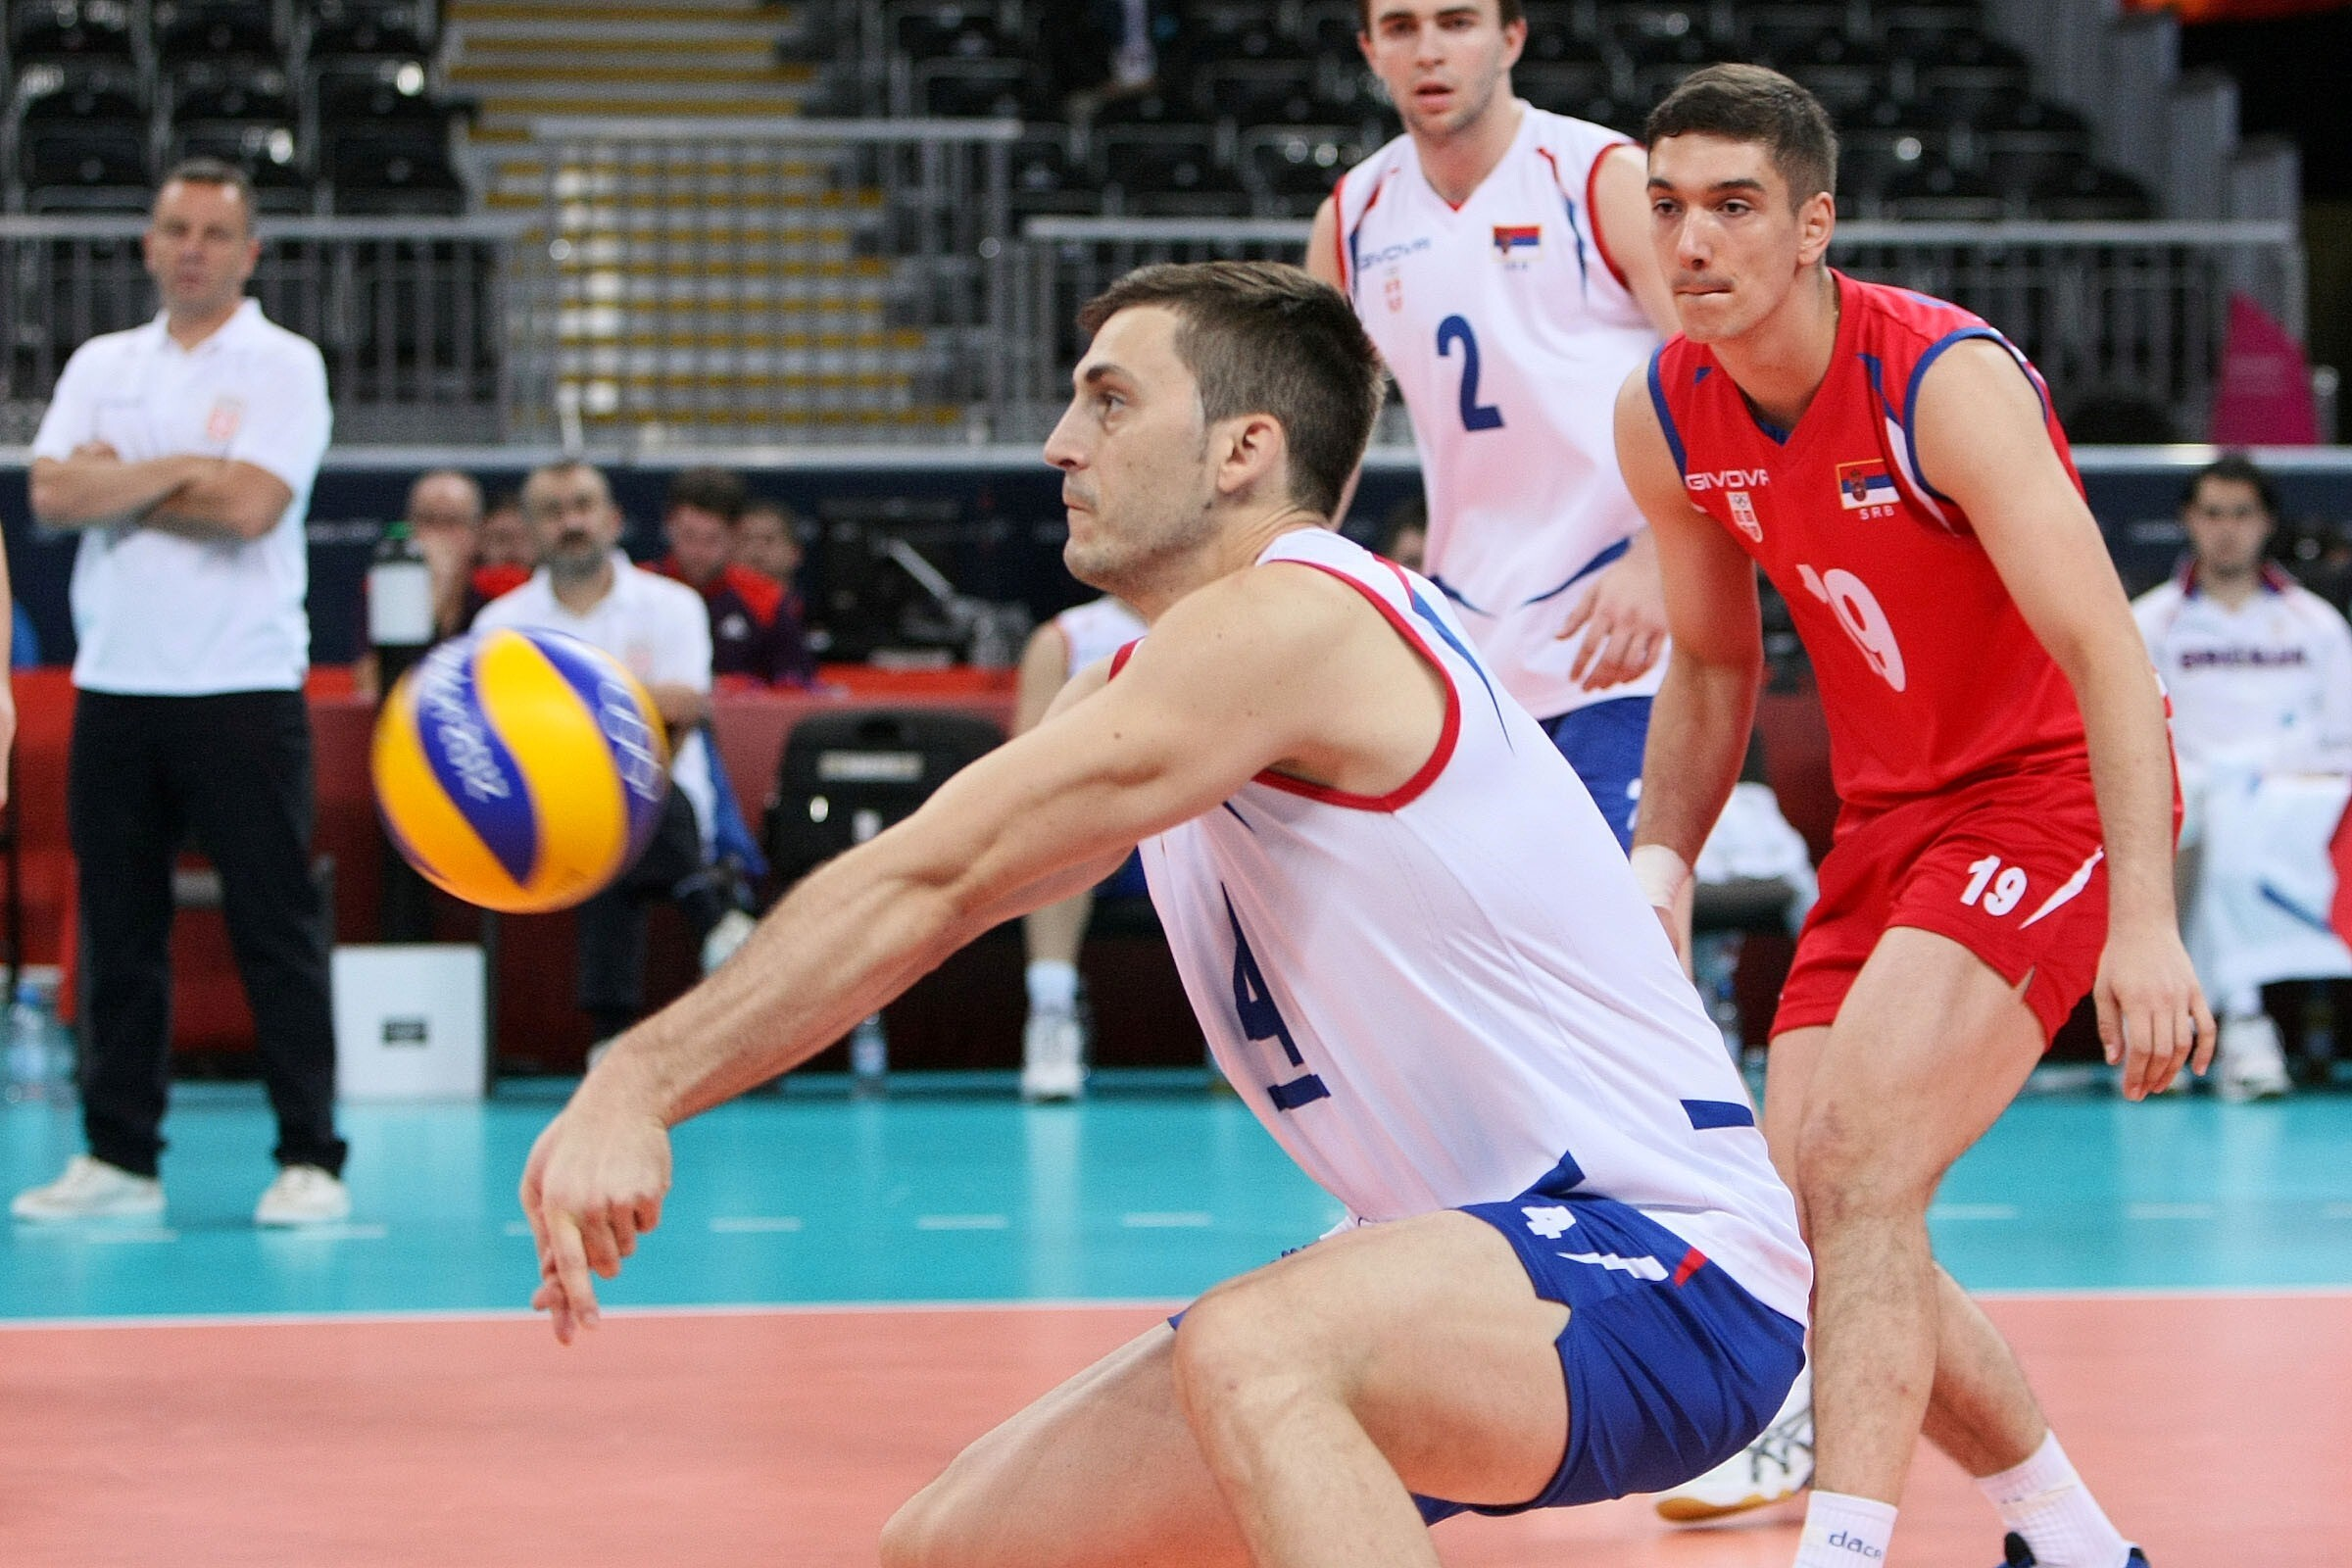 Man volleyball wallpapers hd wallpapers voltagebd Images